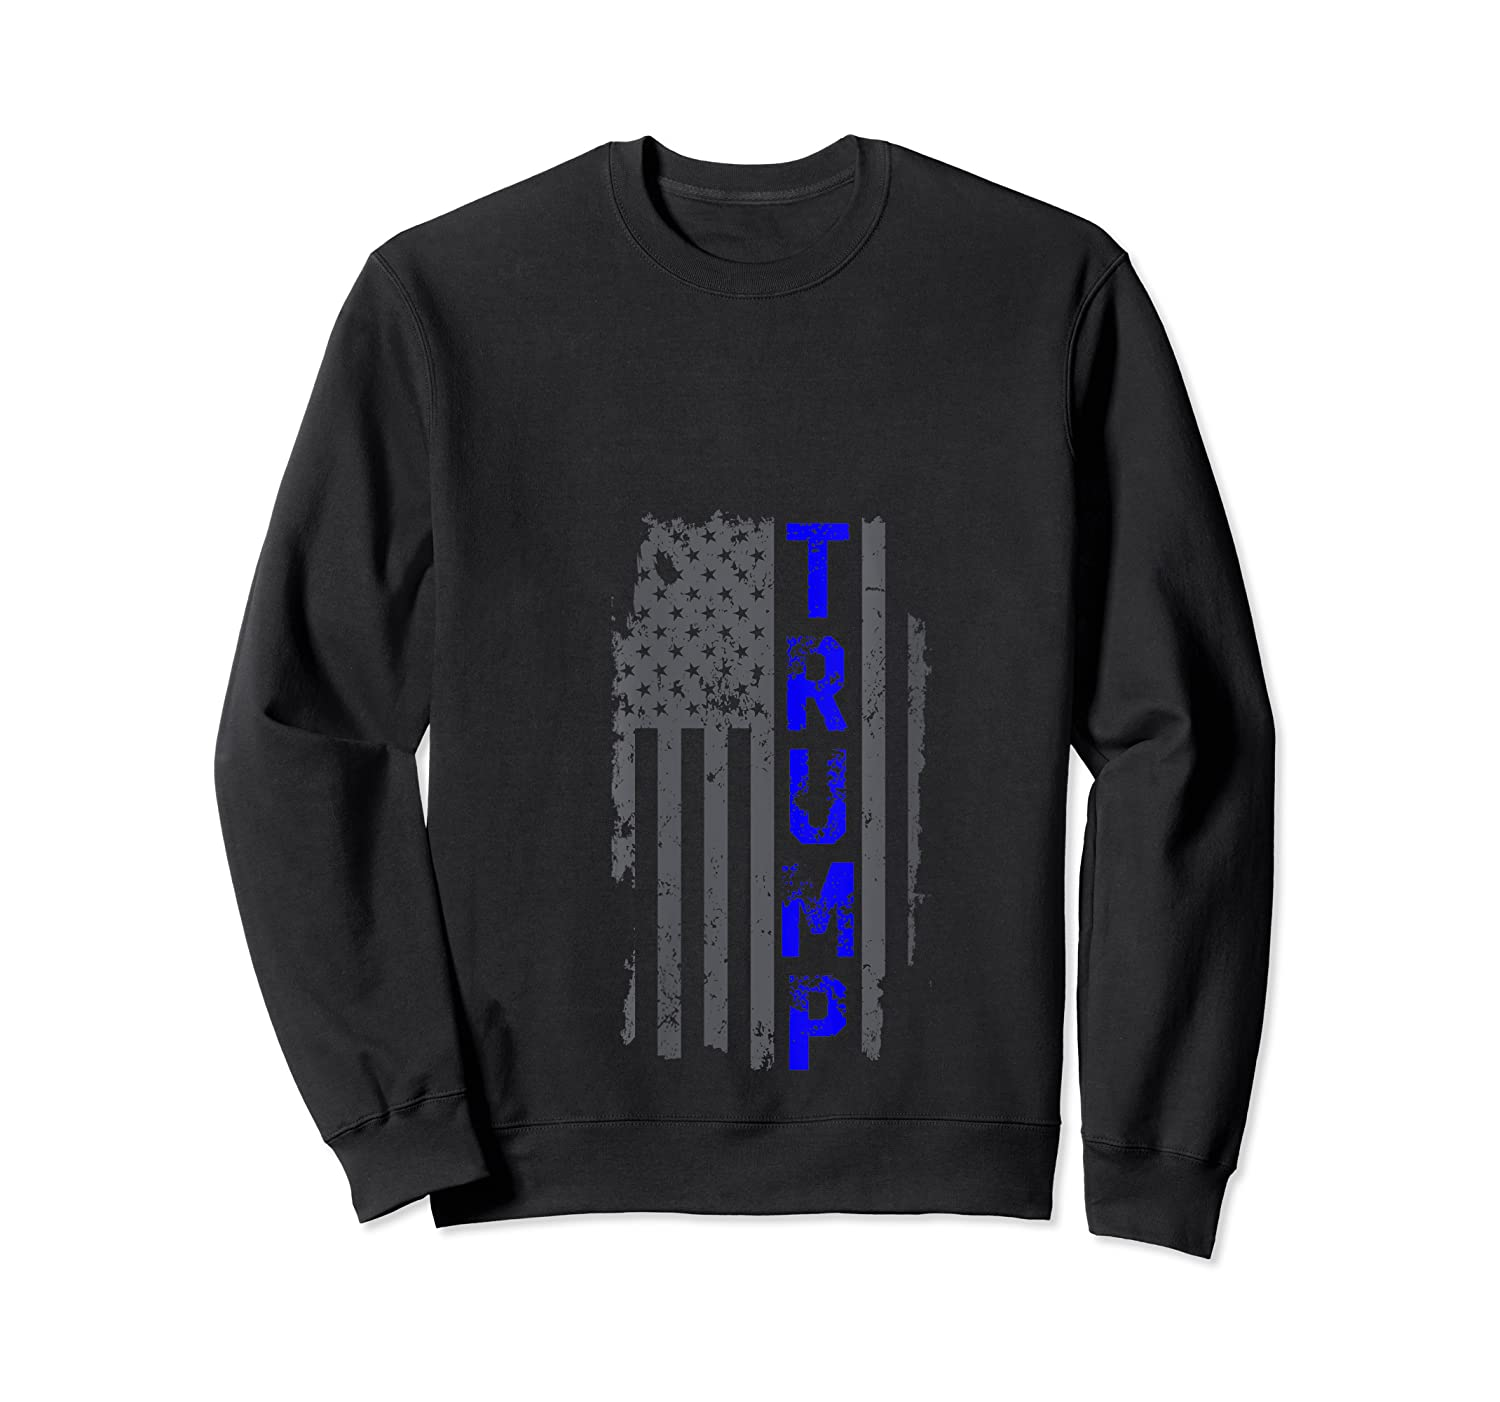 Thin Blue Line Police Officer Election 2020 Donald Trump T-shirt Crewneck Sweater